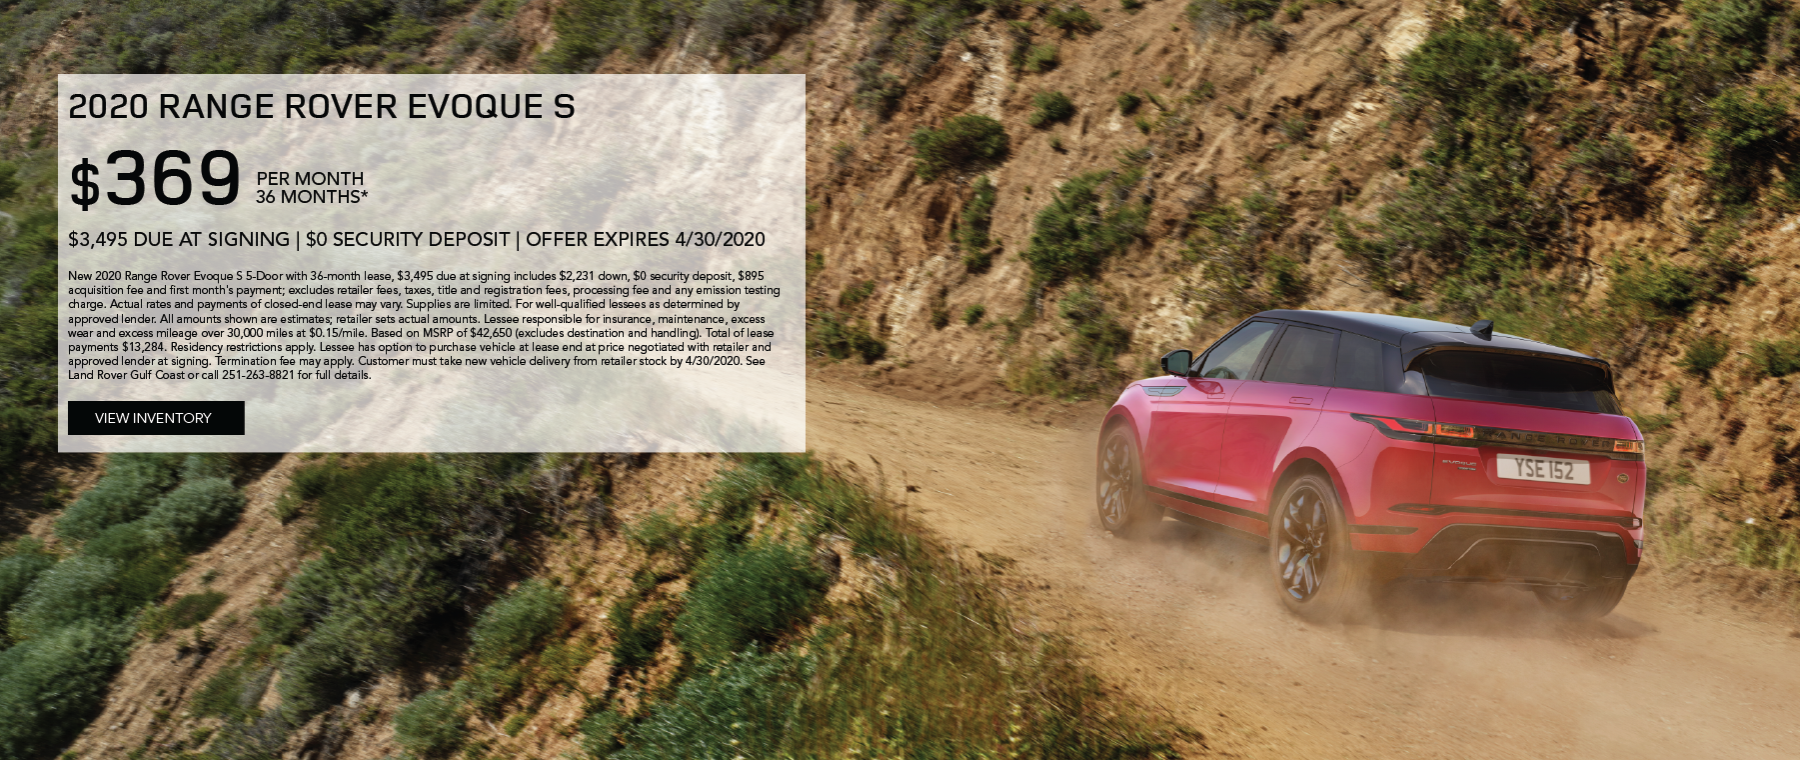 Red 2020 Range Rover Evoque S on uphill dirt road. Lease for $369/month for 36 months $3,495 Cash due at signing. New 2020 Range Rover Evoque S 5-Door with 36-month lease, $3,495 due at signing includes $2,231 down, $0 security deposit, $895 acquisition fee and first month's payment; excludes retailer fees, taxes, title and registration fees, processing fee and any emission testing charge. Actual rates and payments of closed-end lease may vary. Supplies are limited. For well-qualified lessees as determined by approved lender. All amounts shown are estimates; retailer sets actual amounts. Lessee responsible for insurance, maintenance, excess wear and excess mileage over 30,000 miles at $0.15/mile. Based on MSRP of $42,650 (excludes destination and handling). Total of lease payments $13,284. Residency restrictions apply. Lessee has option to purchase vehicle at lease end at price negotiated with retailer and approved lender at signing. Termination fee may apply. Customer must take new vehicle delivery from retailer stock by 4/30/2020. See Land Rover Gulf Coast or call 251-263-8821 for full details. Click to view inventory.